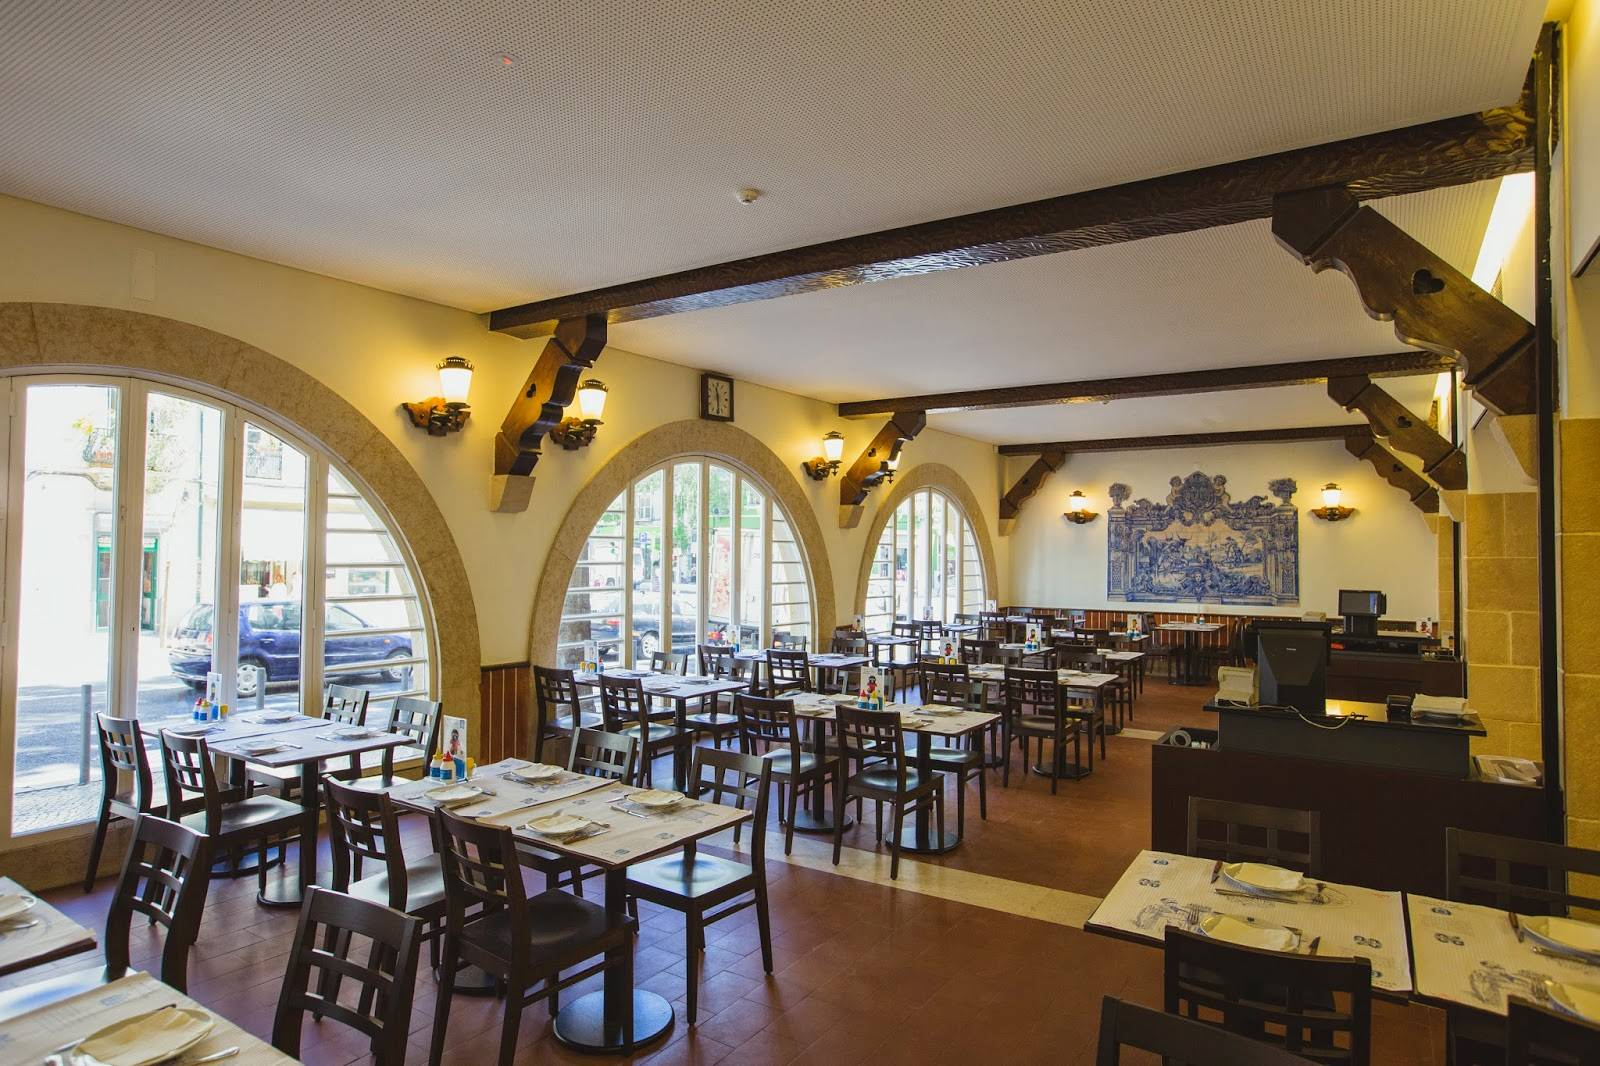 Our team picks Cervejaria Portugália, a typical restaurant in Lisbon famous for its steaks and beer.